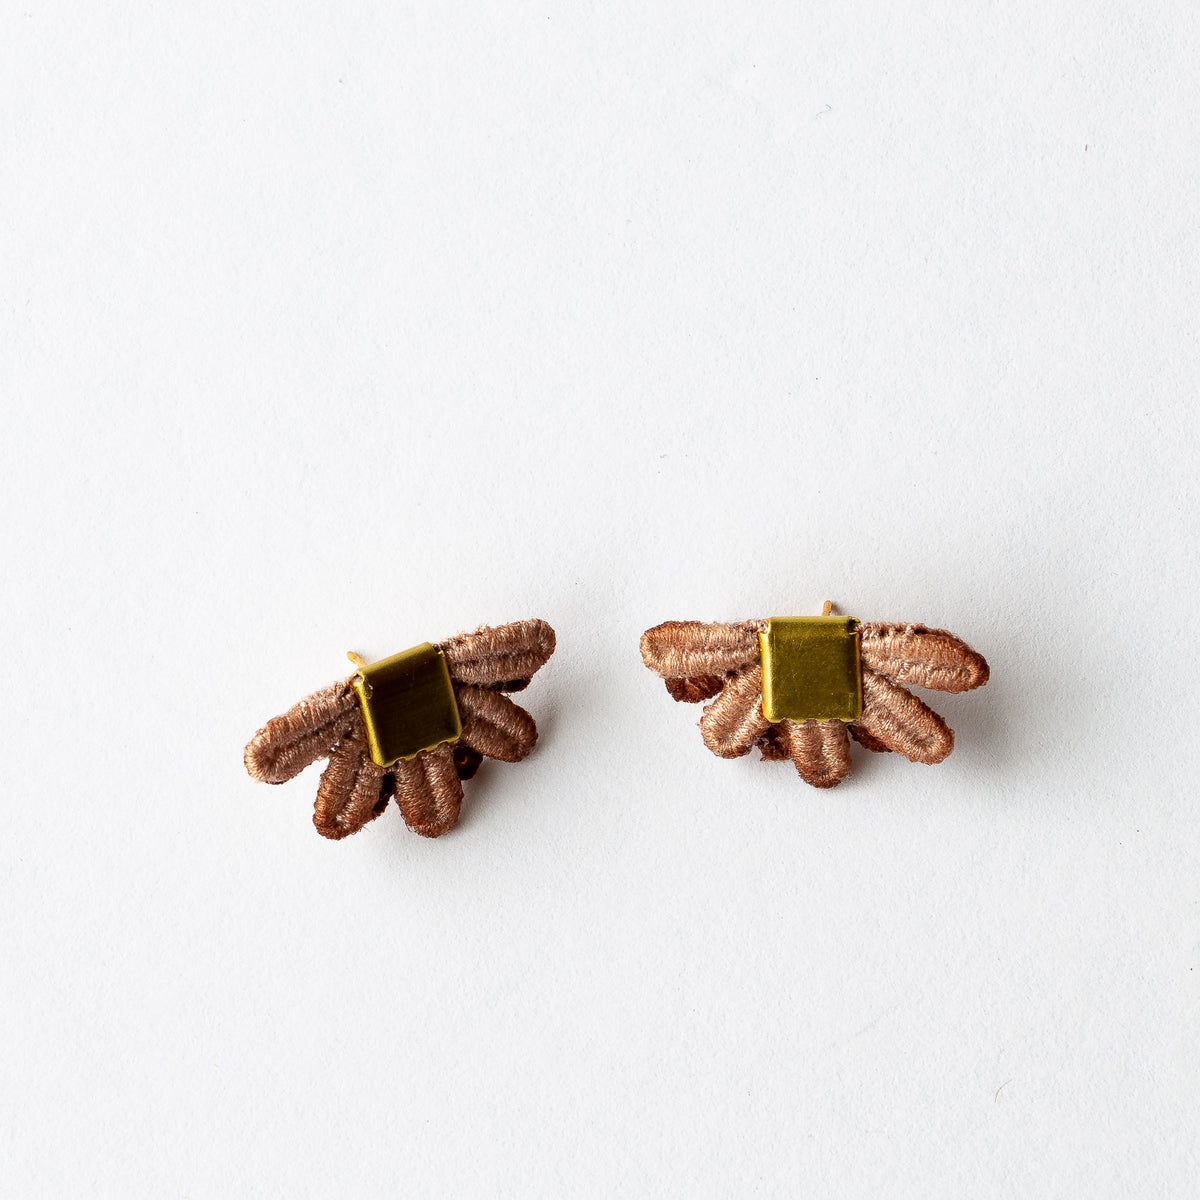 Desert Rose Lace -  Larrea - Hand Dyed Lace & Brass Stud Earrings - Sold by CHic & Basta